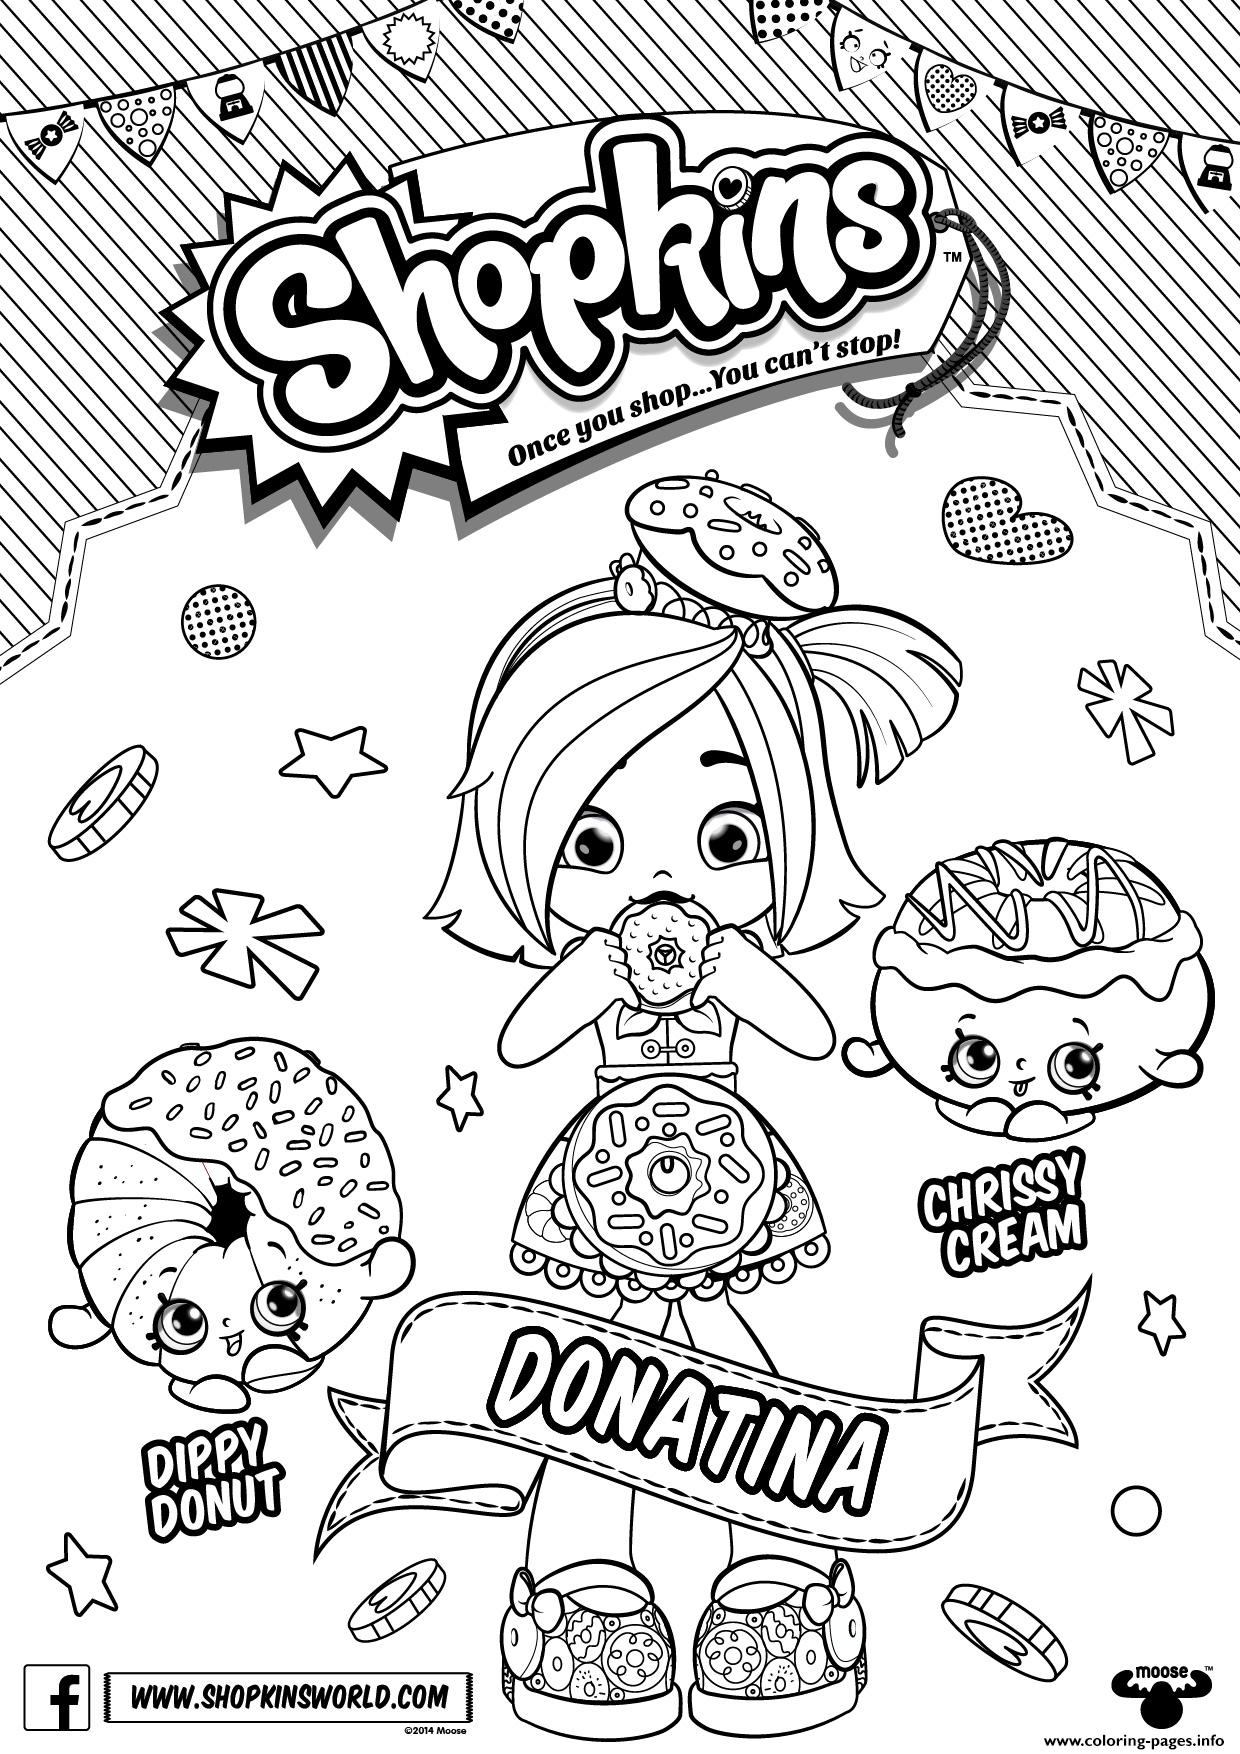 shopkins coloring pages season 6 - shopkins season 6 doll chef club donatina printable coloring pages book